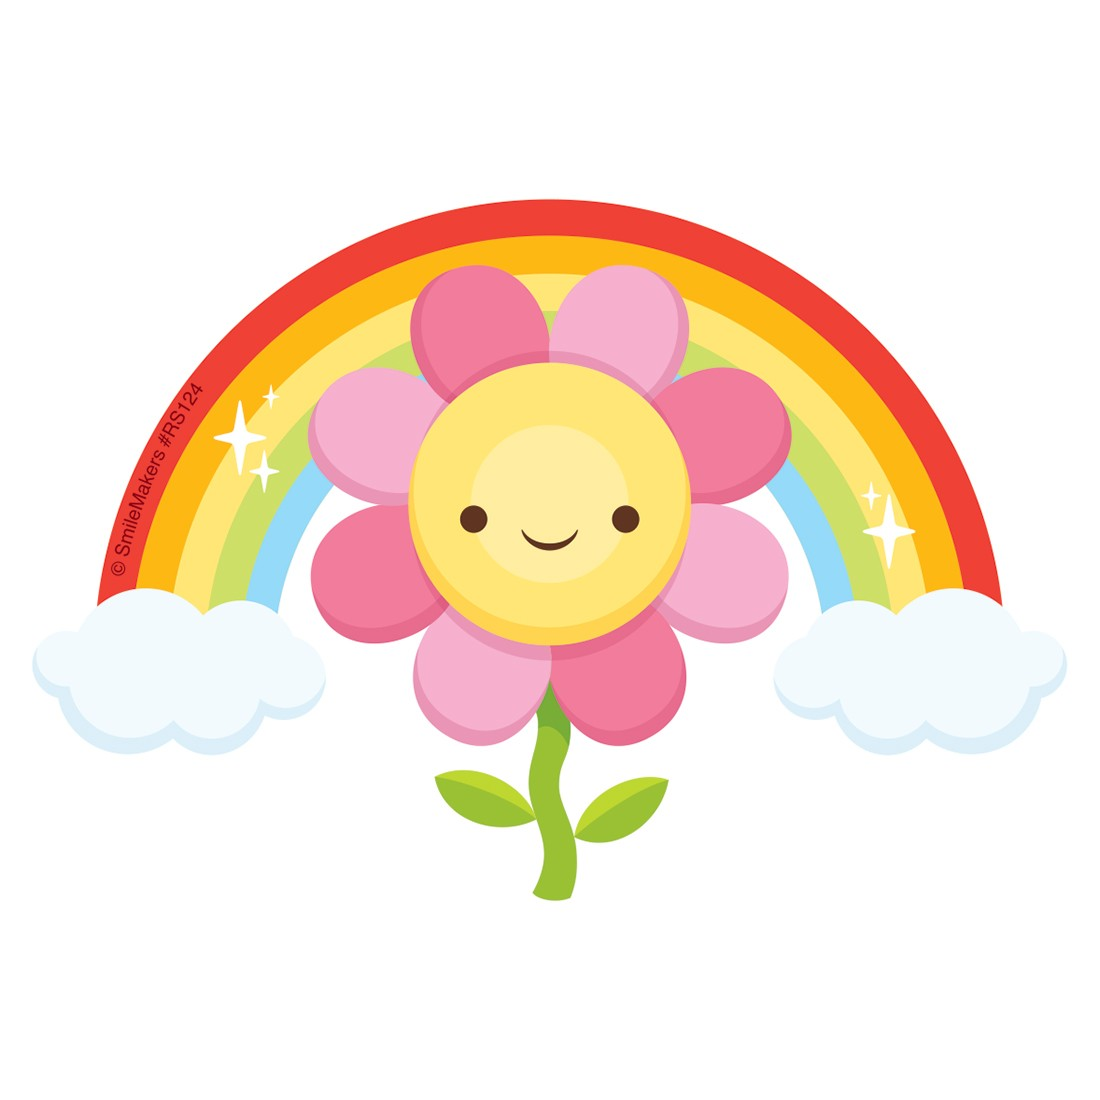 Flower Rainbow Re-Stickable Stickers [image]